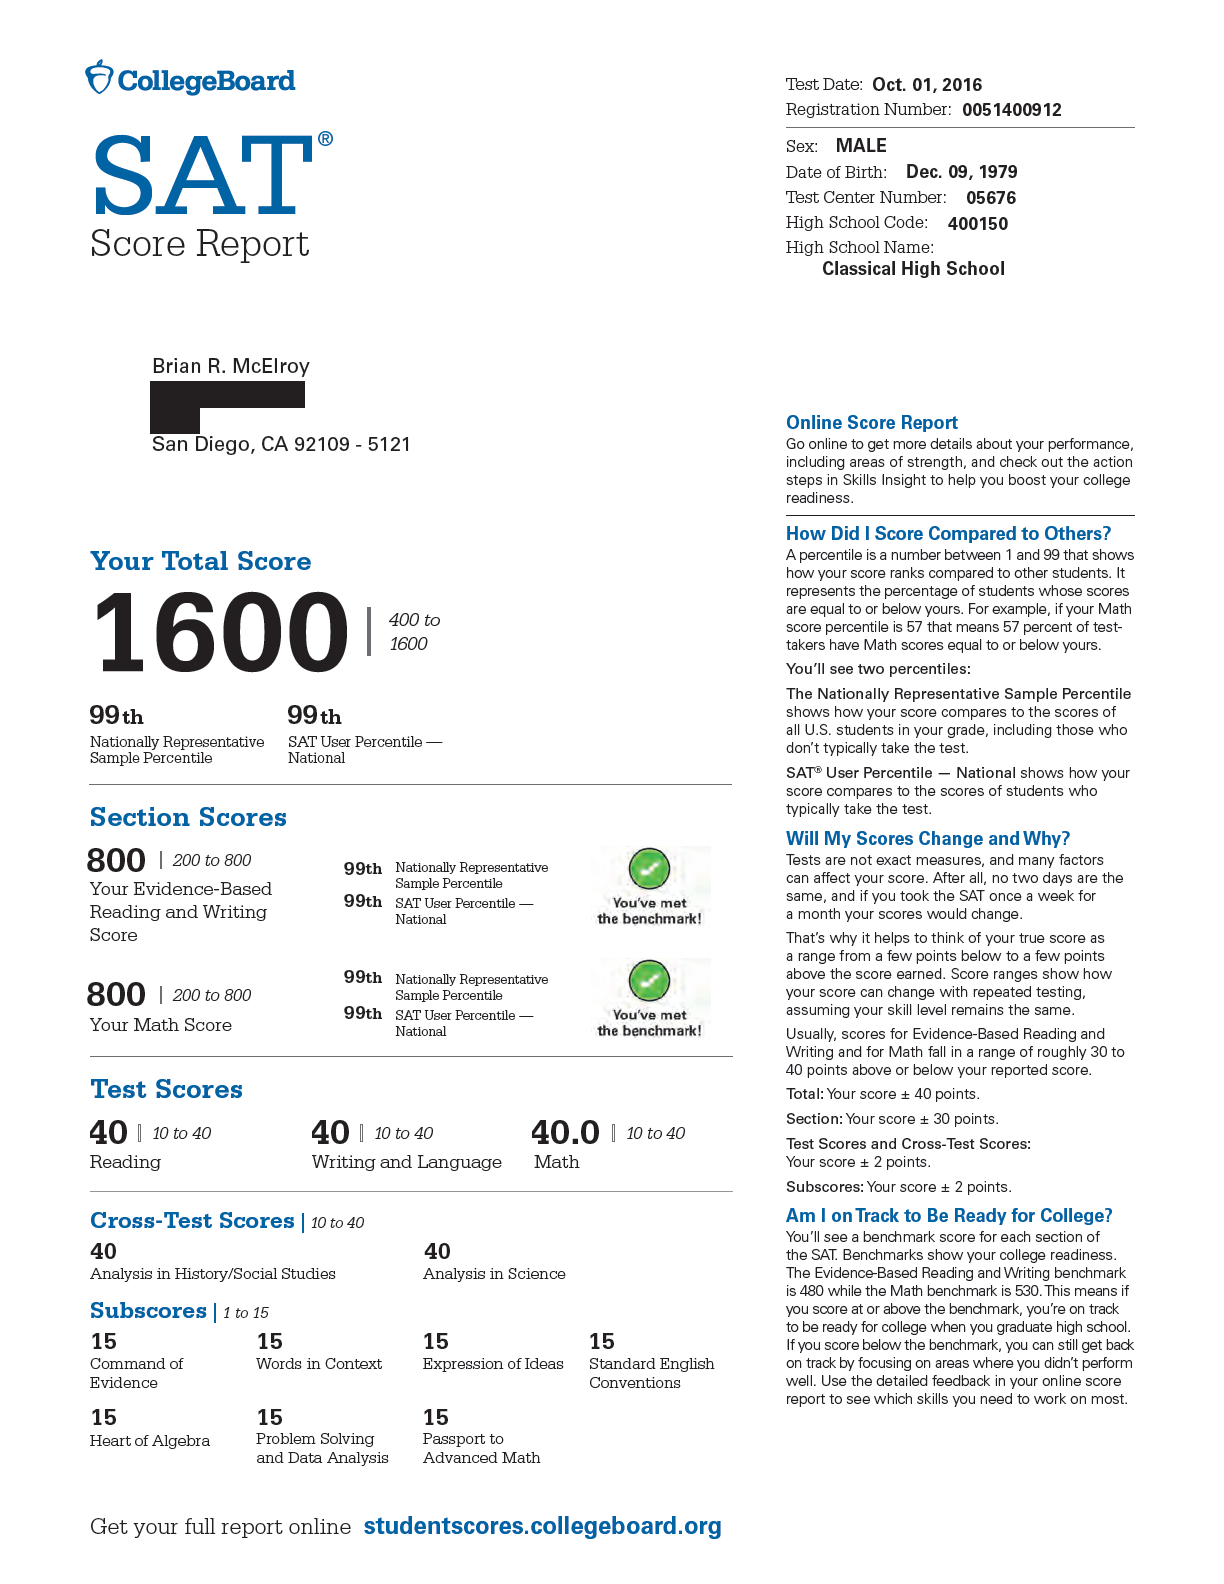 009 Is On The Sat Essay Good Score Paralegal Resume Obje How To Write Really Intro Introduction Conclusion Perfect Unbelievable A 6 New Out Of 8 Full